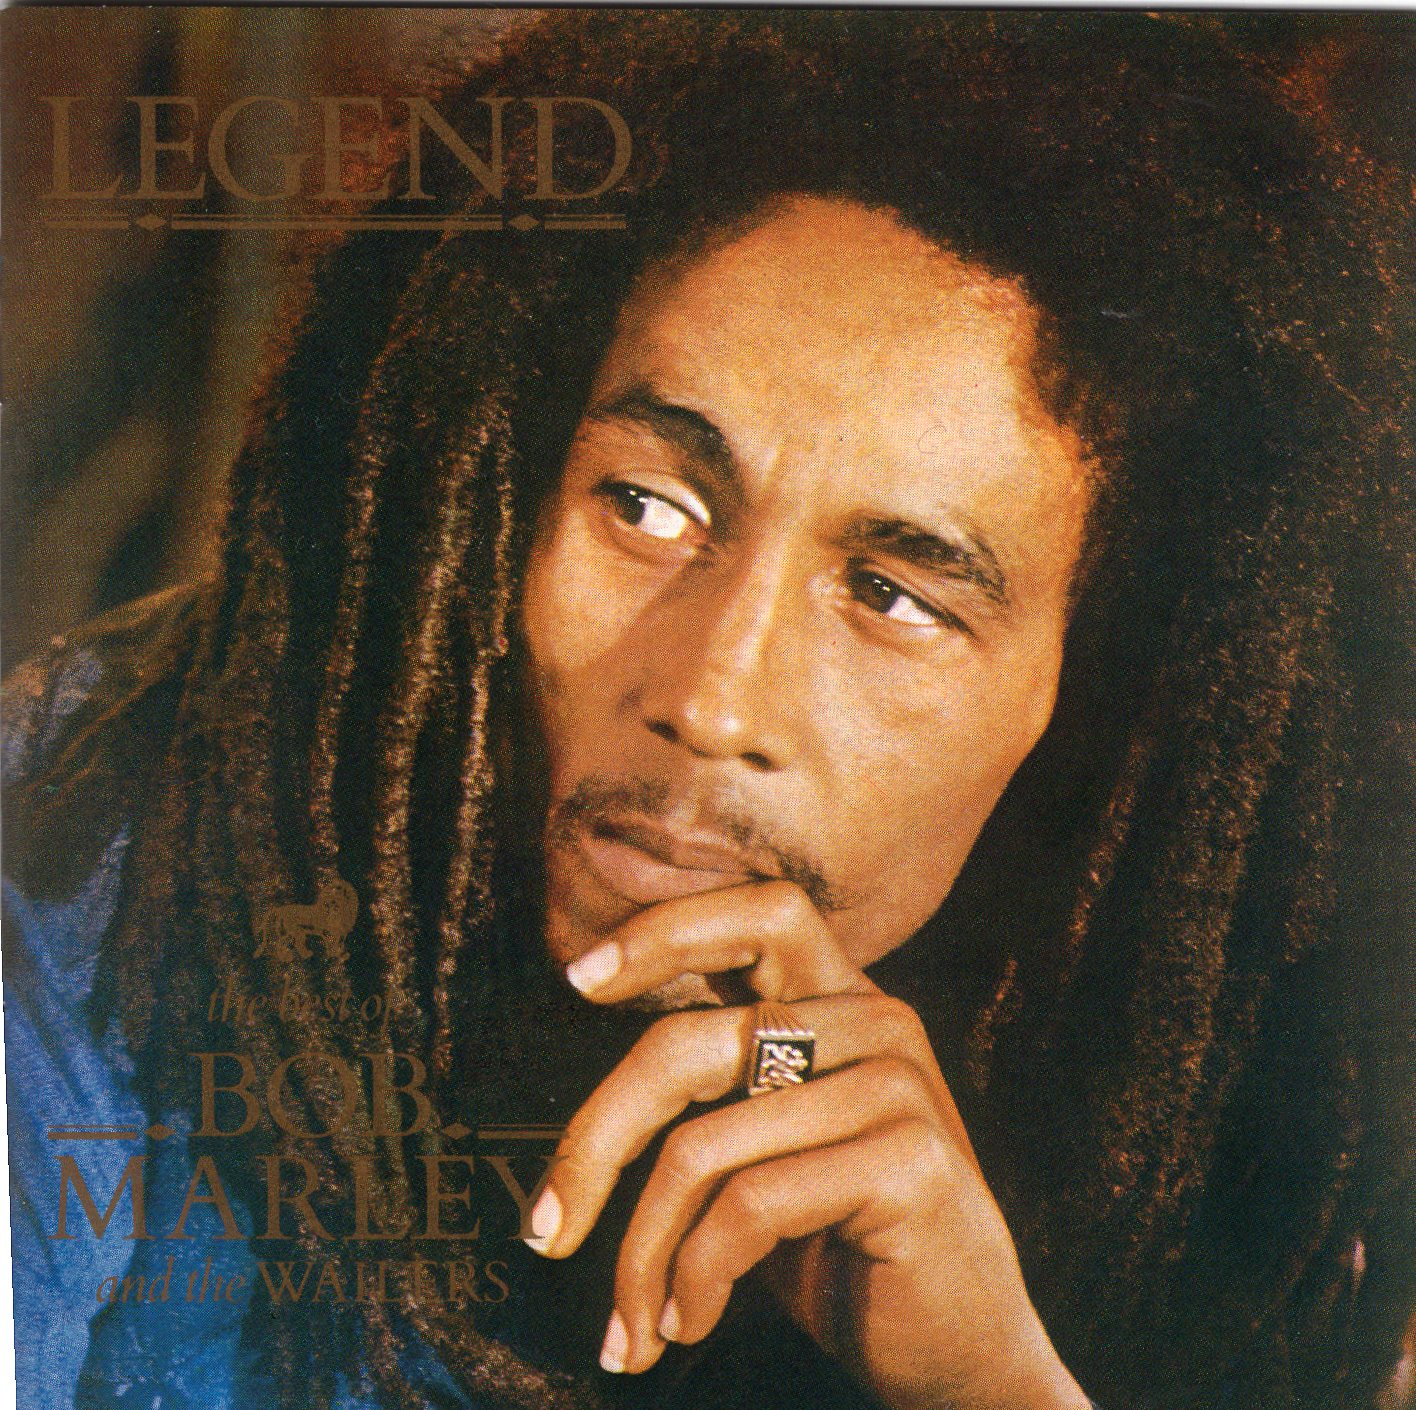 """Legend"" Bob Marley & The Wailers"